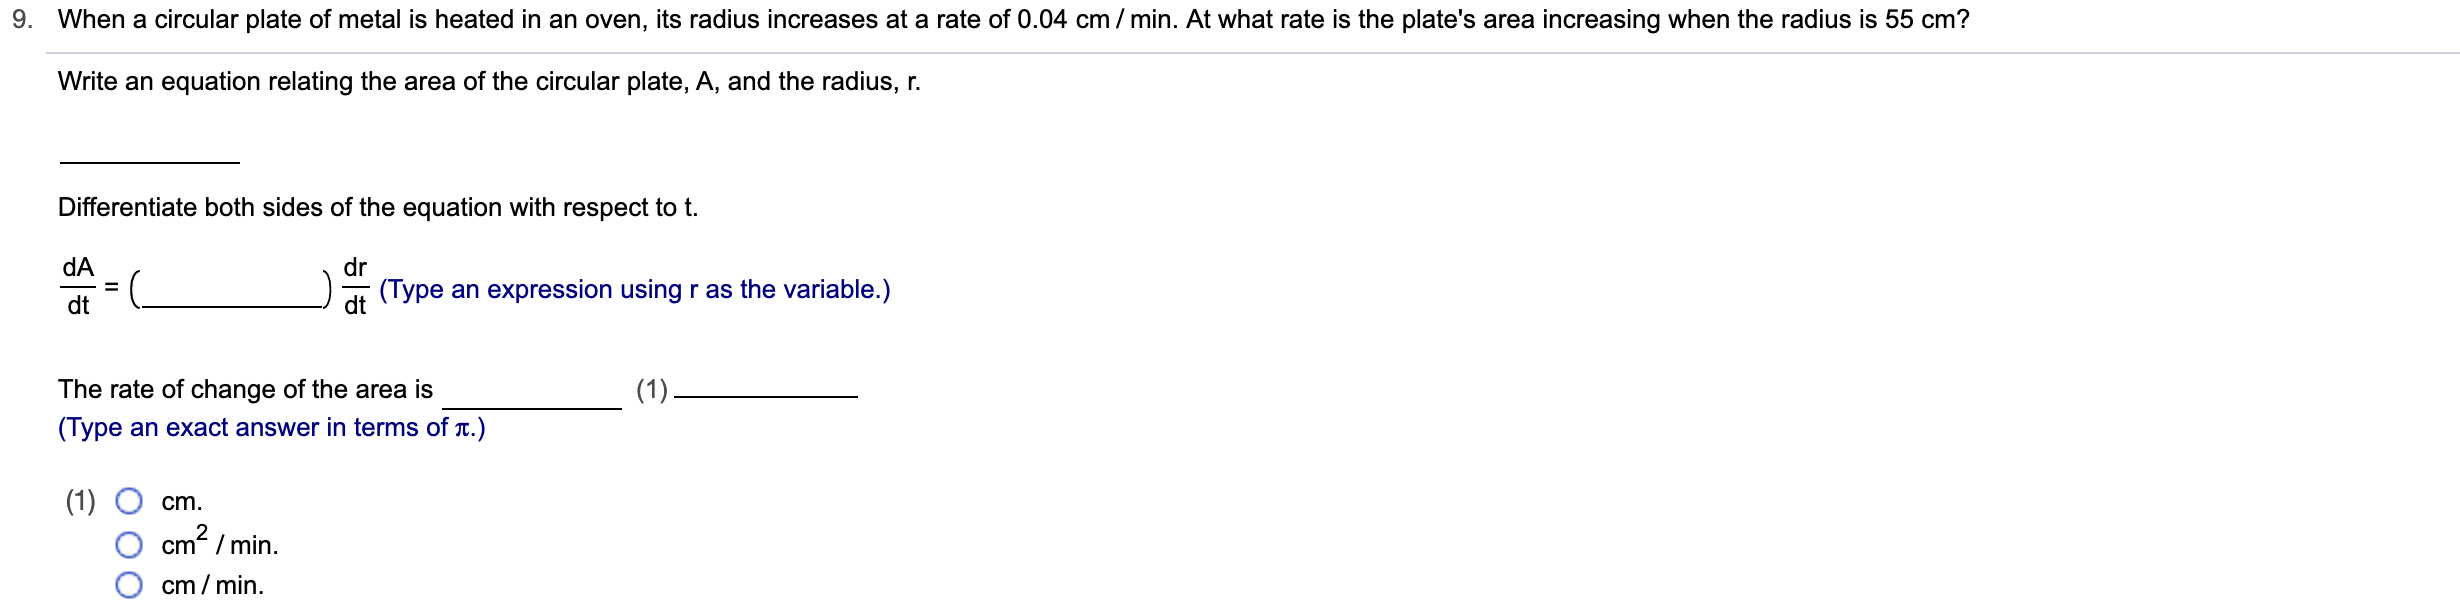 When a circular plate of metal is heated in an oven, its radius increases at a rate of 0.04 cm / min. At what rate is the plate's area increasing when the radius is 55 cm? Write an equation relating the area of the circular plate, A, and the radius, r Differentiate both sides of the equation with respect to t. dA dr (Type an expression using r as the variable.) dt The rate of change of the area is (1) (Type an exact answer in terms of t.) (1) cm2/min cm cm/min